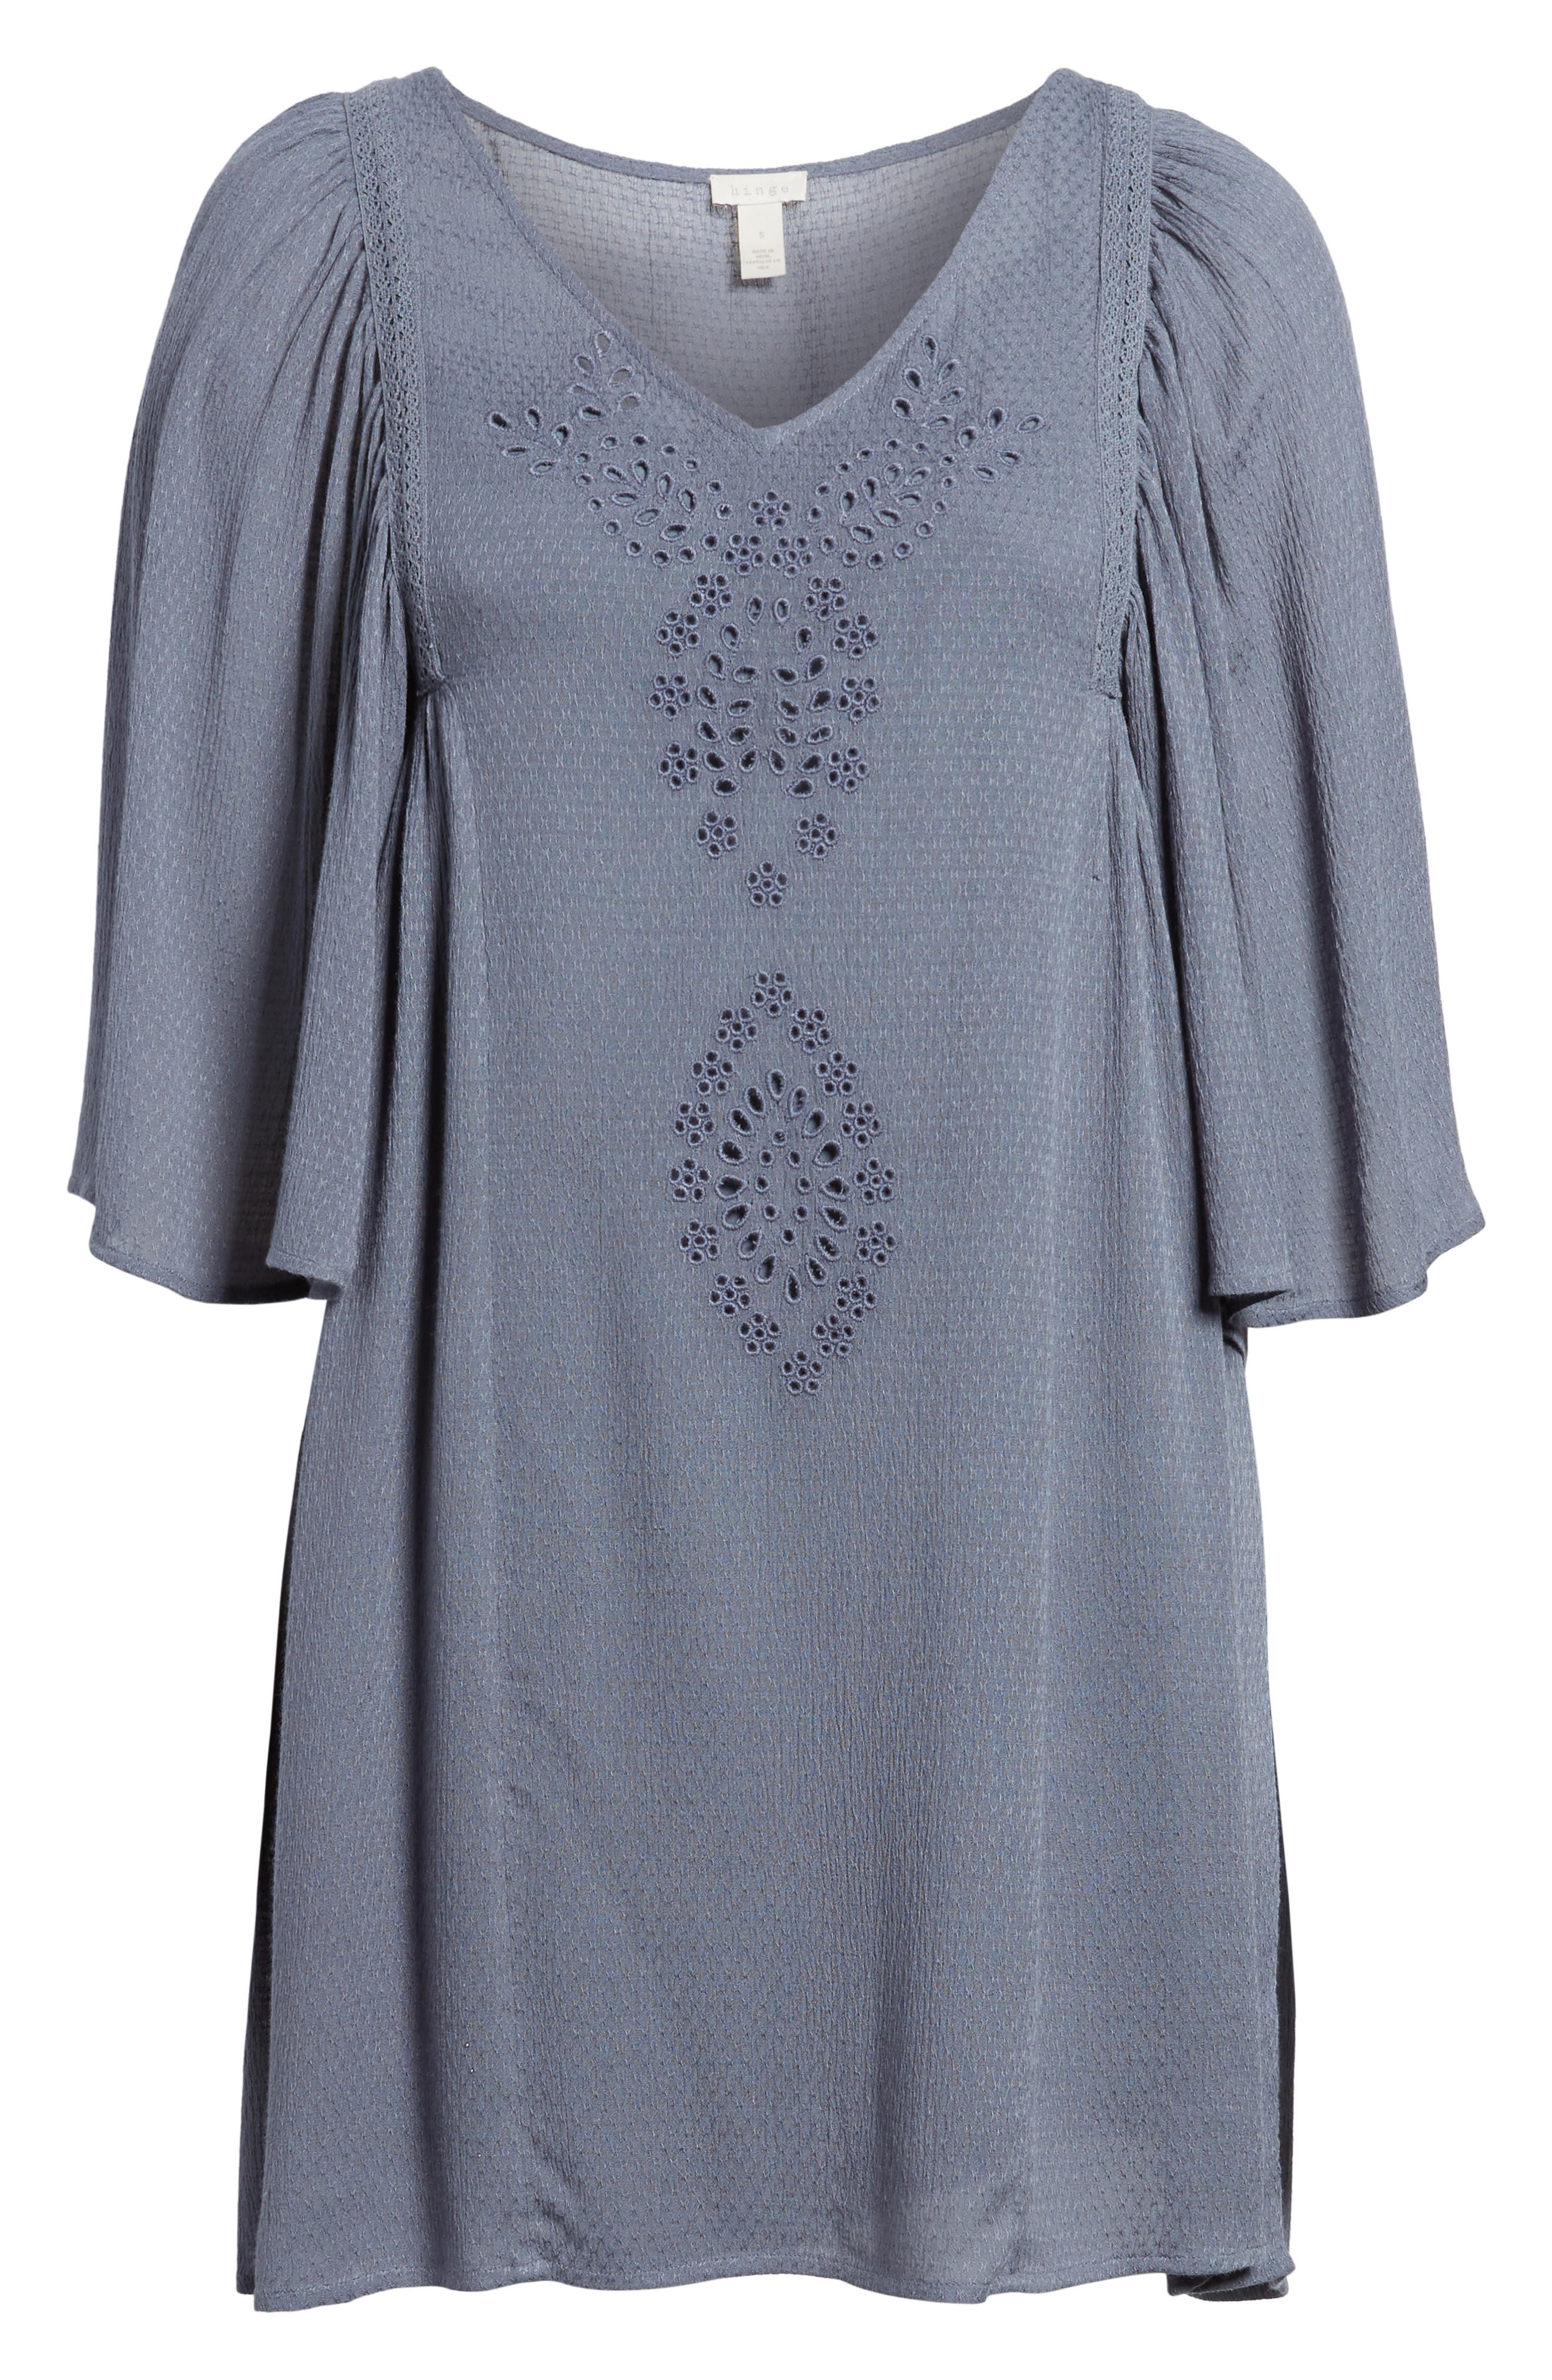 Embroidered Dress,                             Alternate thumbnail 7, color,                             020